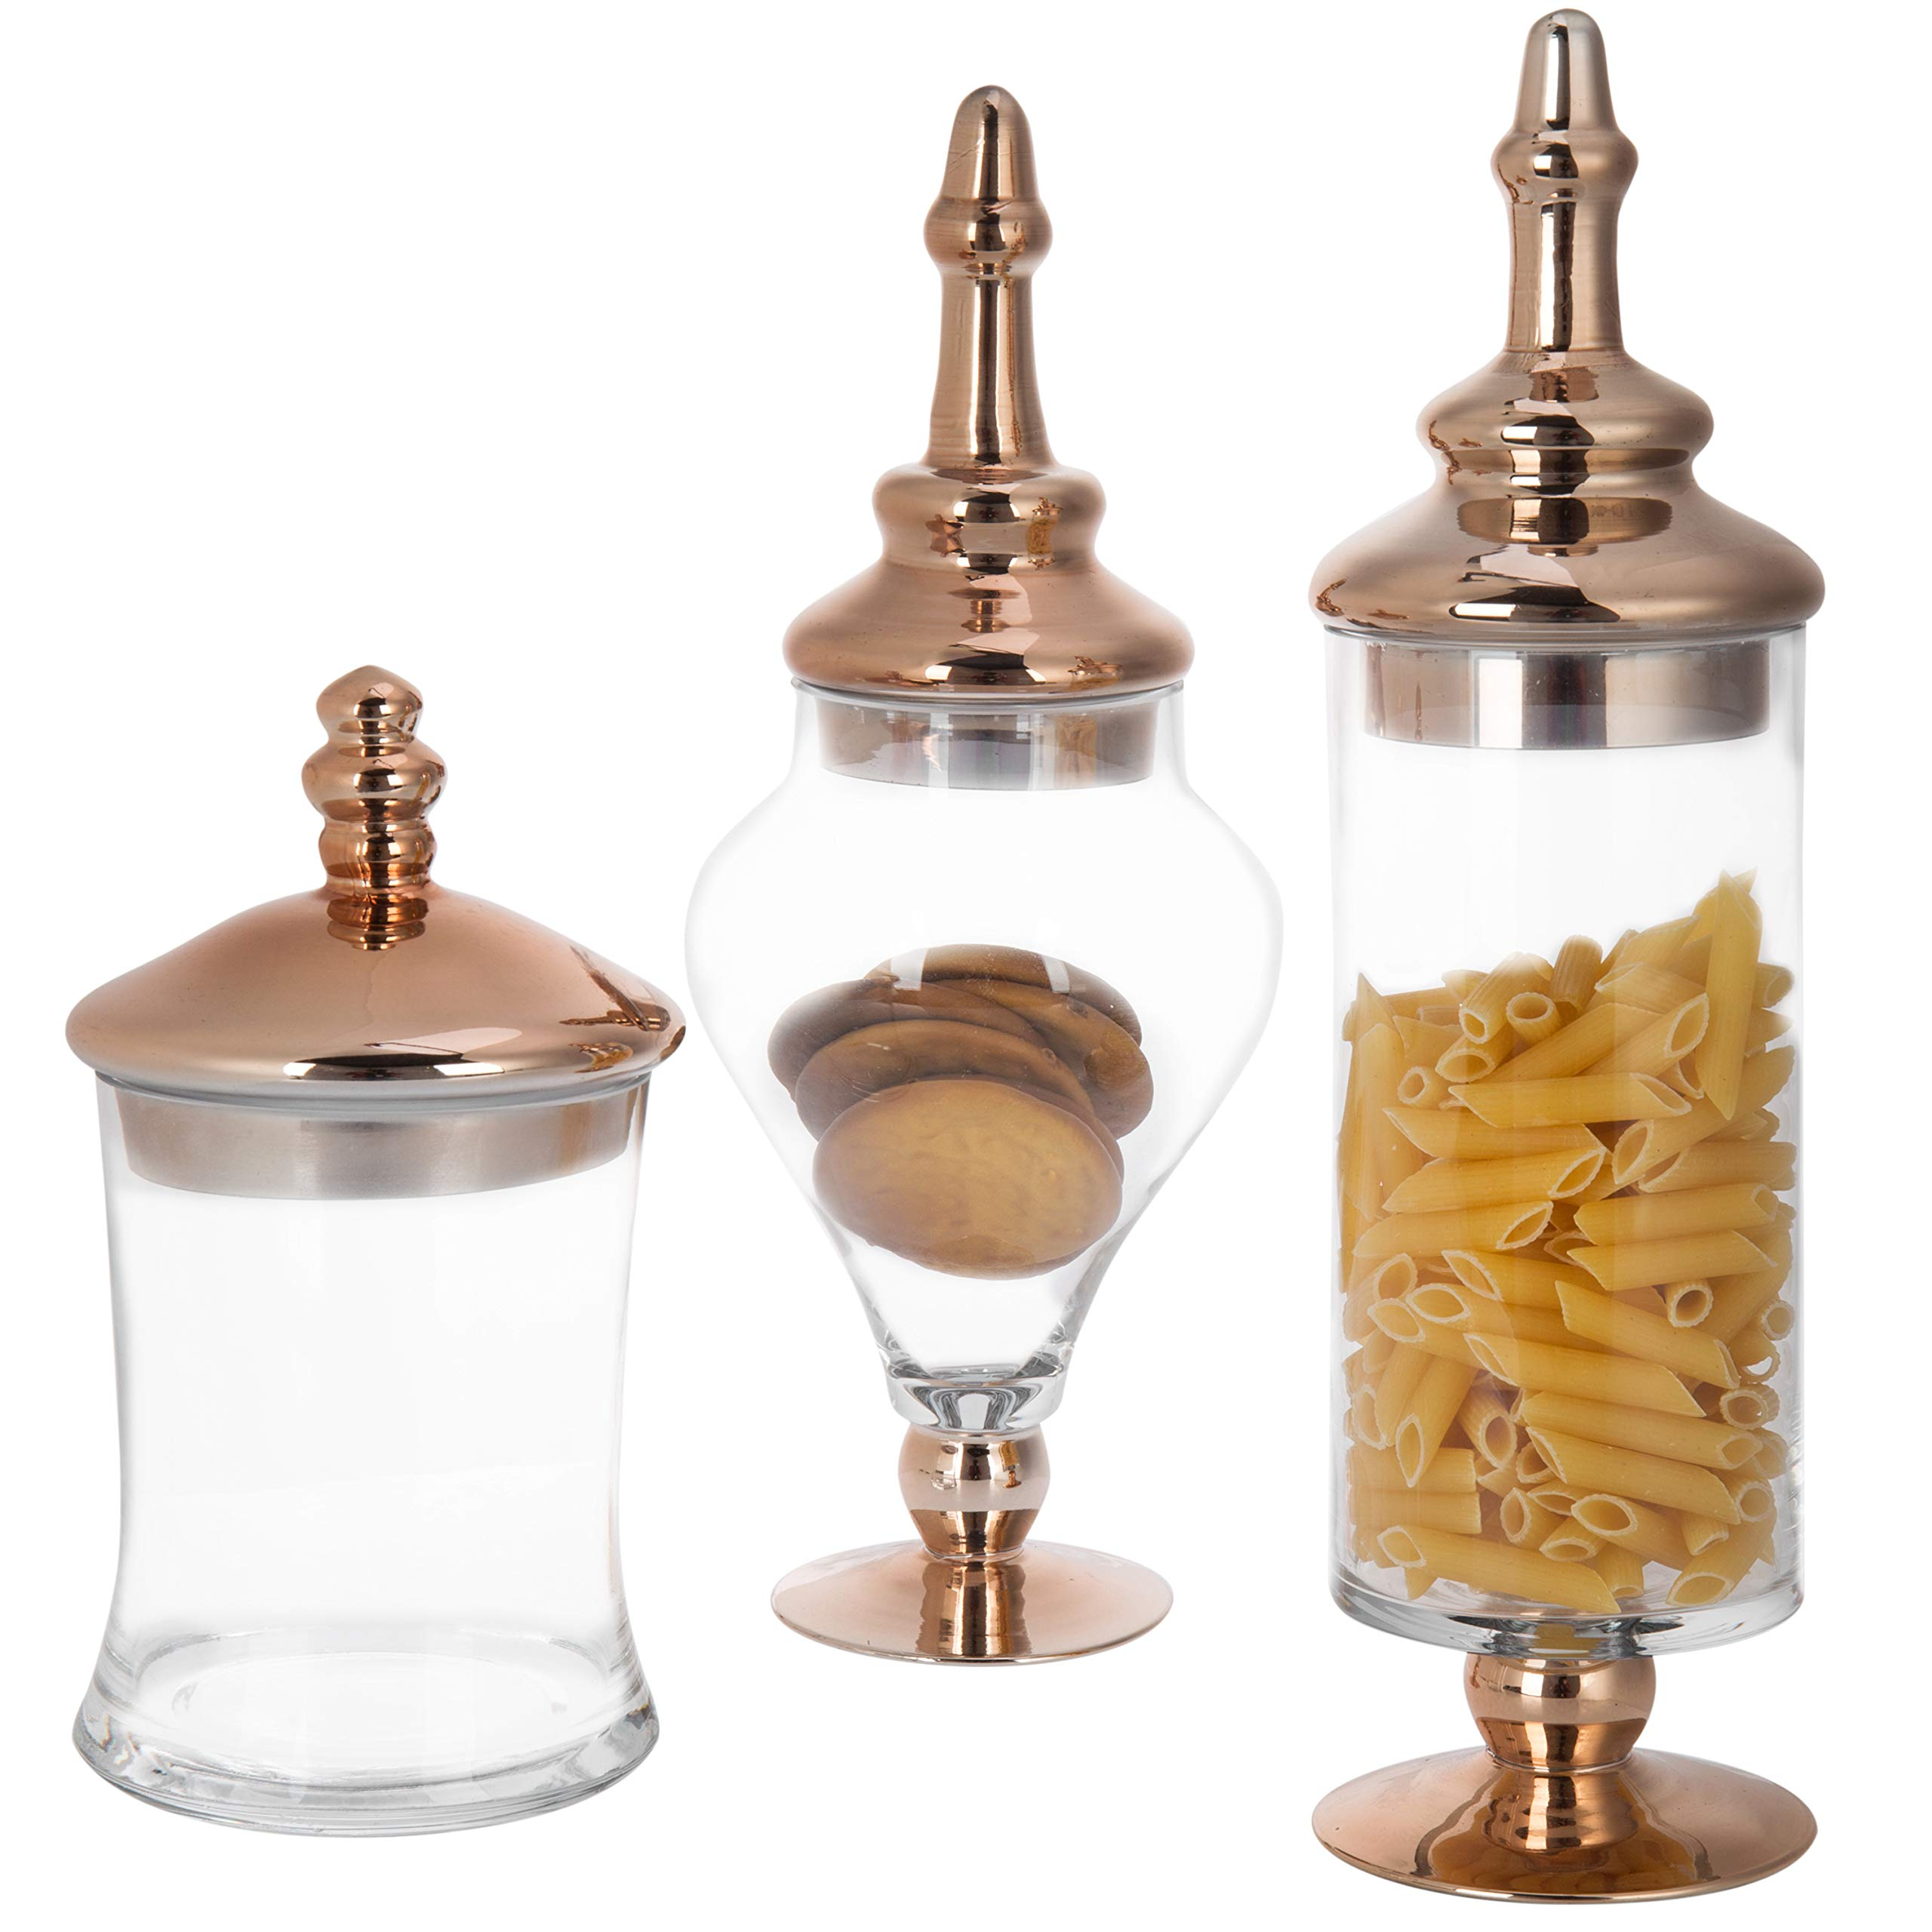 MyGift Set of 3 Antique-Style Glass Apothecary Jars with Metallic Copper-Tone Lids by MyGift